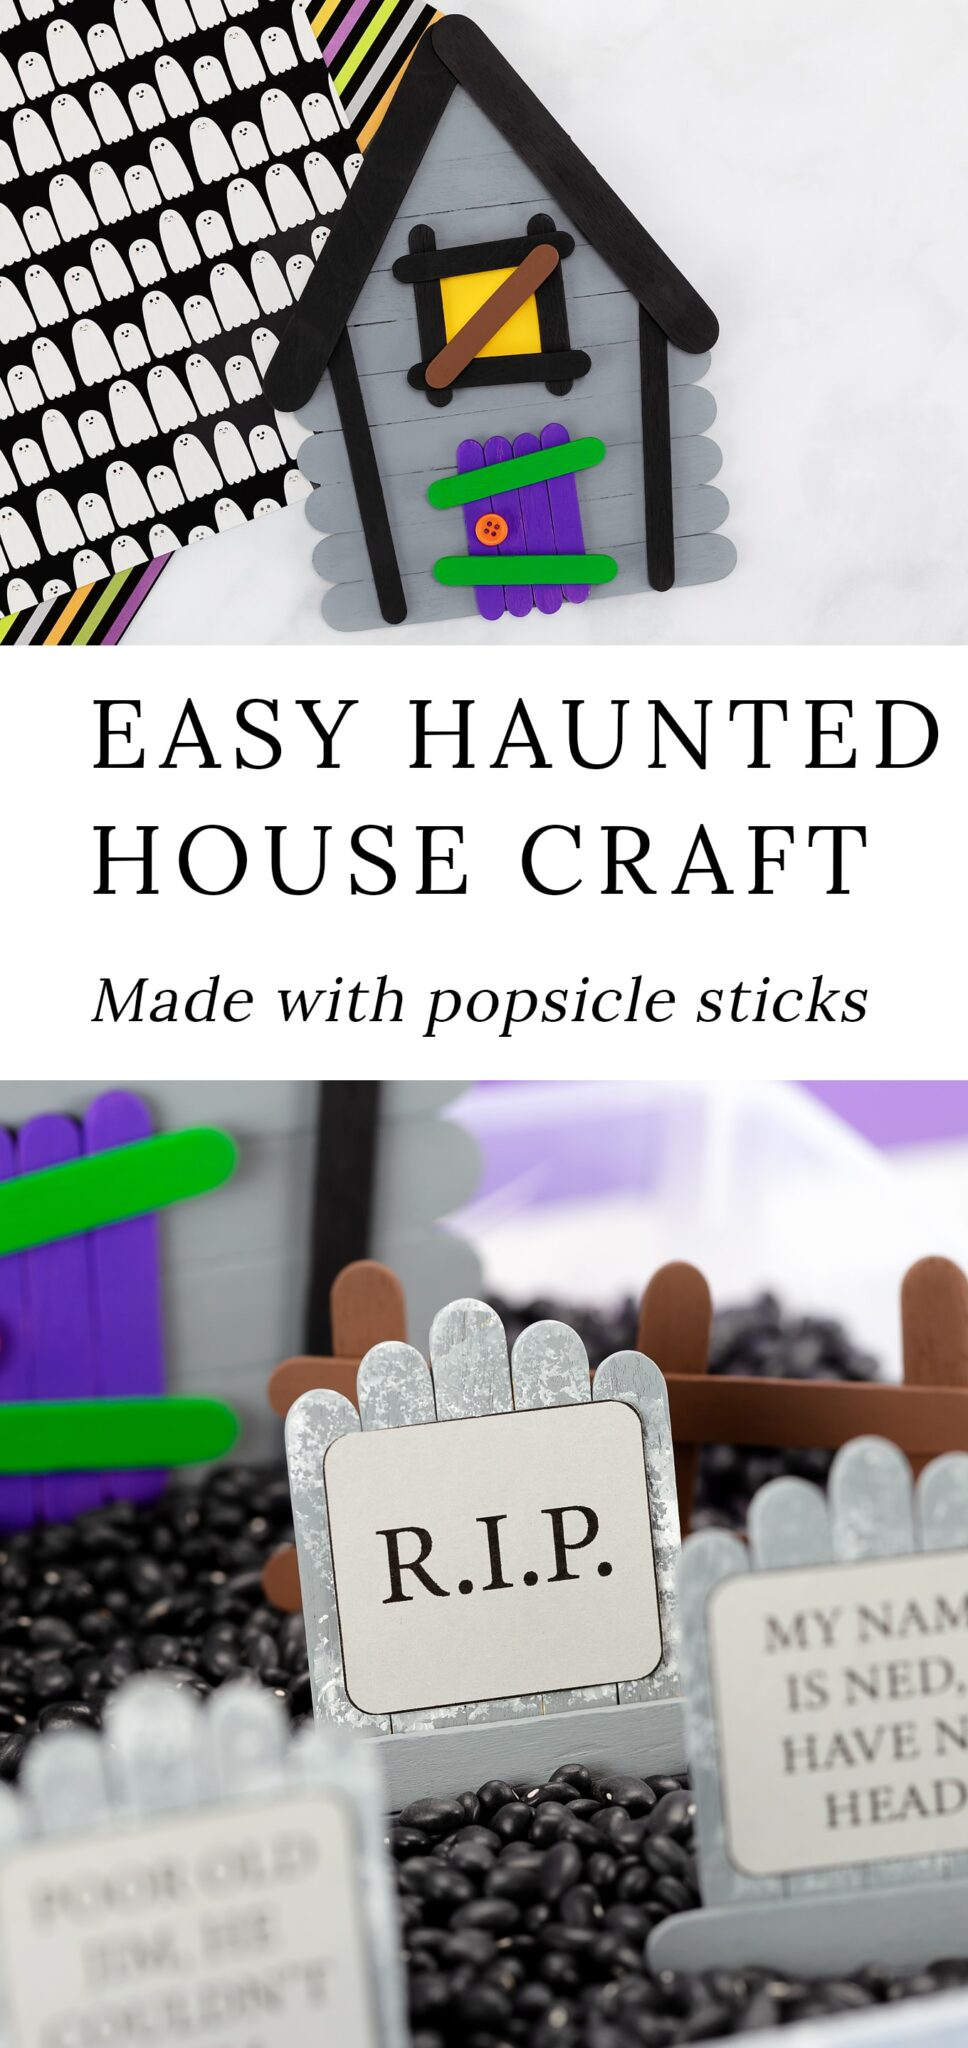 This post includes 3 innovative popsicle stick craft templates that will guide you through the process of making a spooky popsicle stick haunted house complete with popsicle stick tombstones and fences. They are perfect for imaginative play! #popsiclestick #hauntedhouse #halloween #kids via @firefliesandmudpies